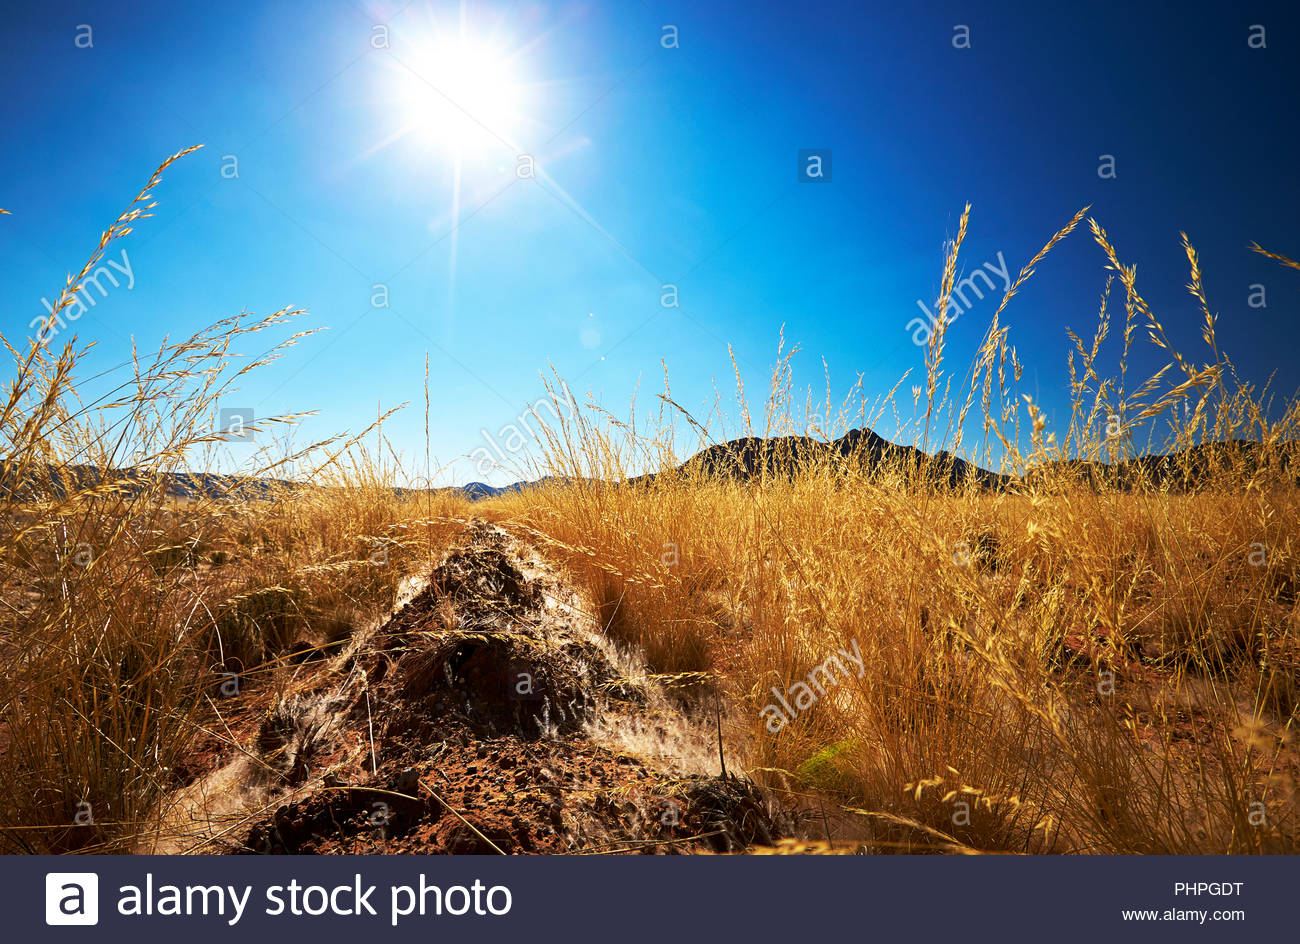 Sun over field - Stock Image